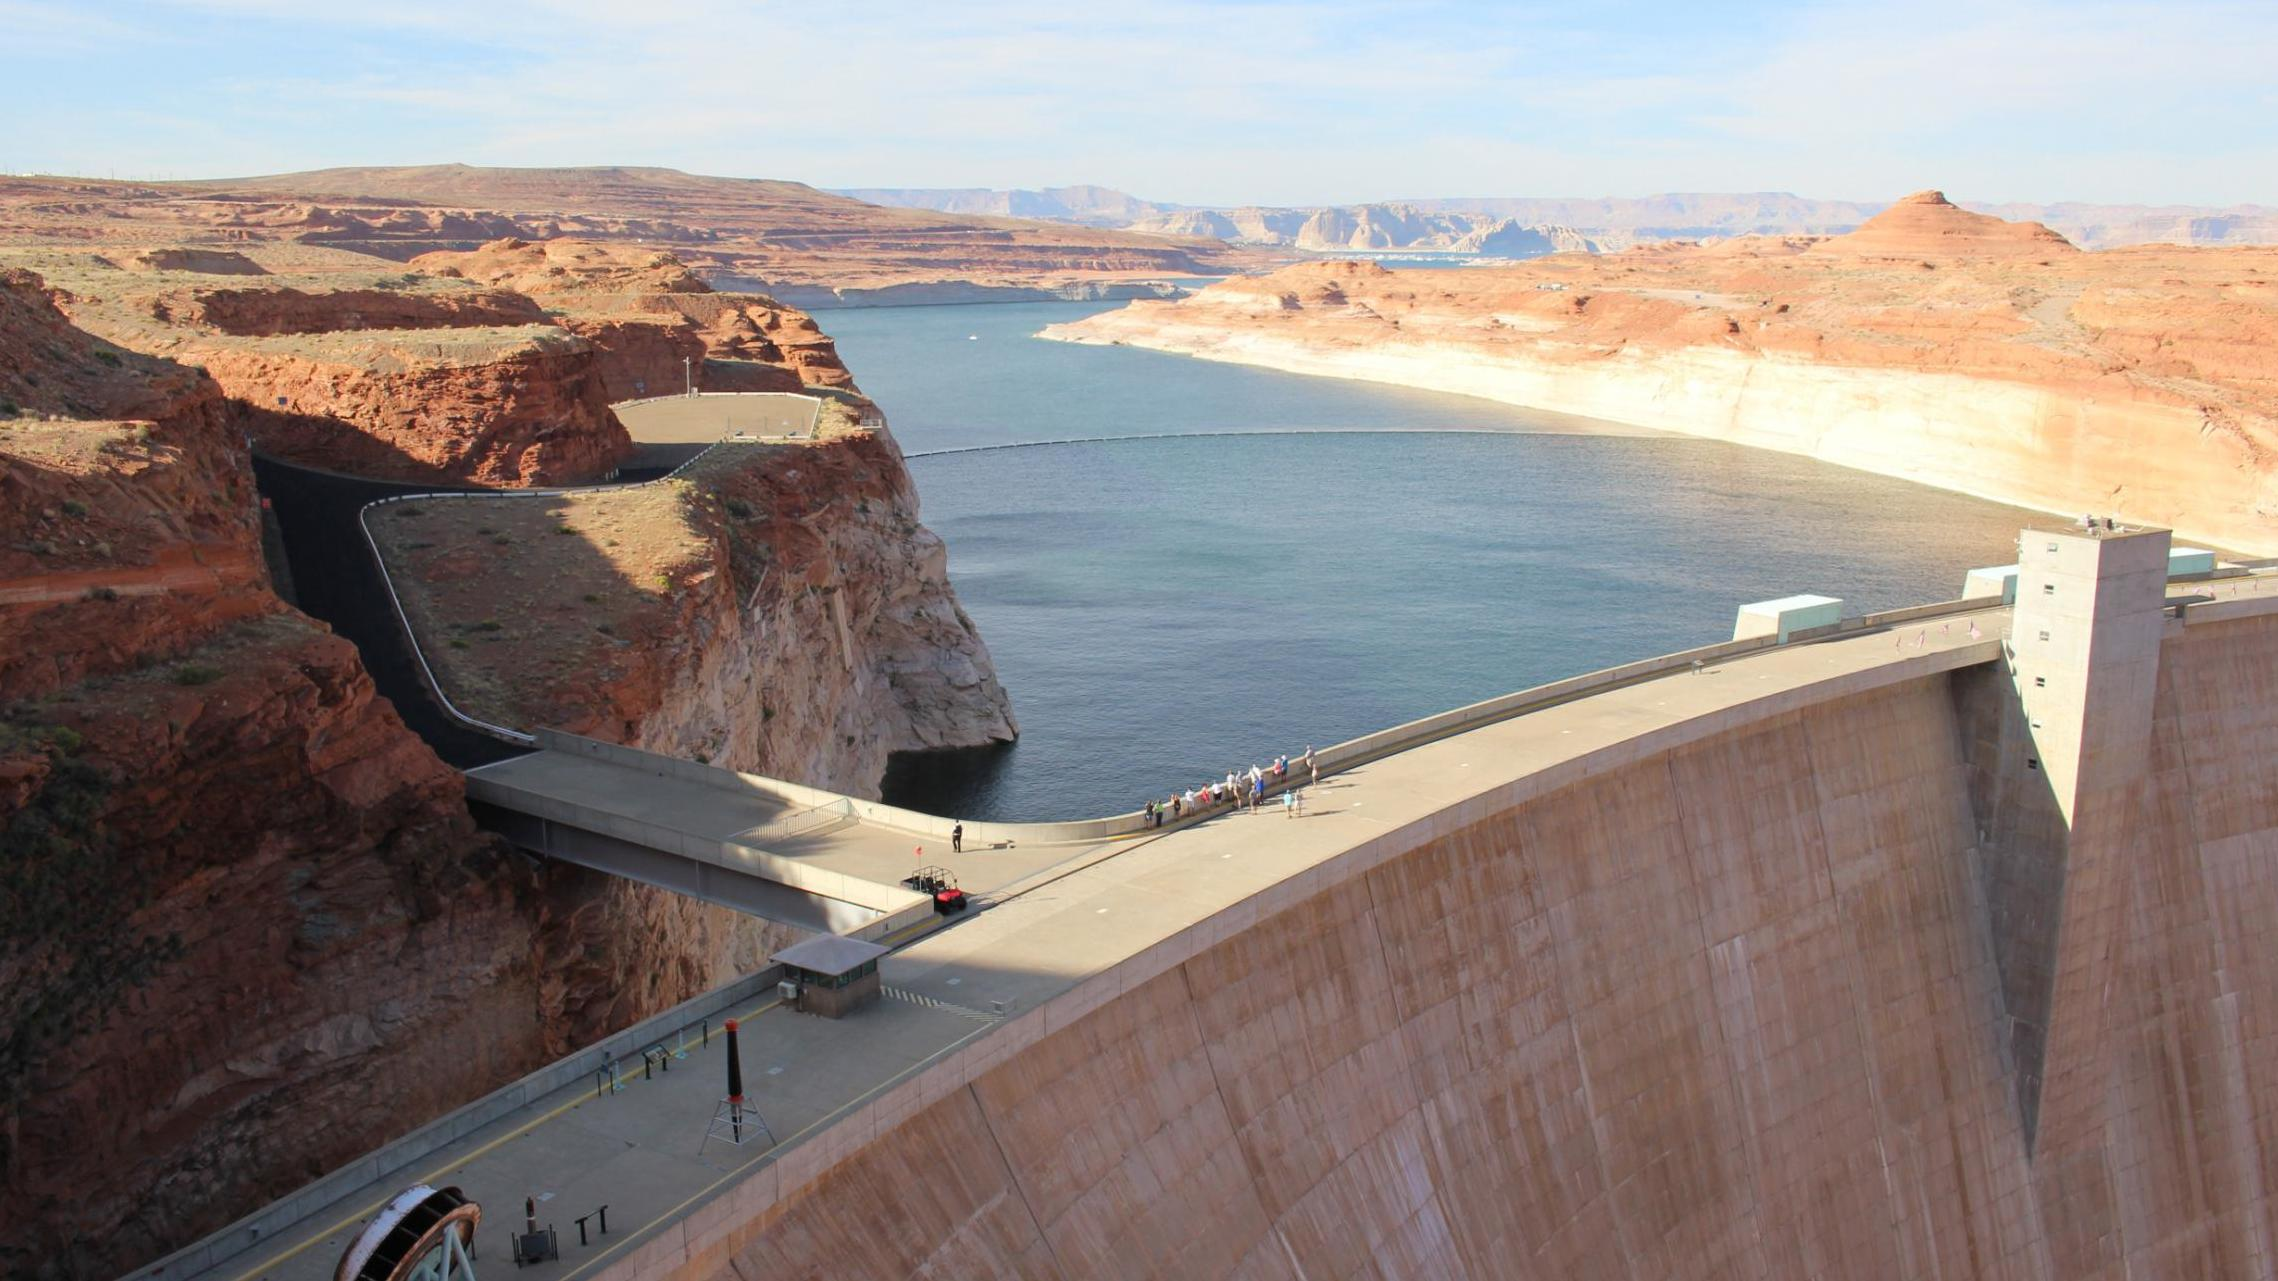 When In Drought: States Take On Urgent Negotiations To Avoid Colorado River Crisis